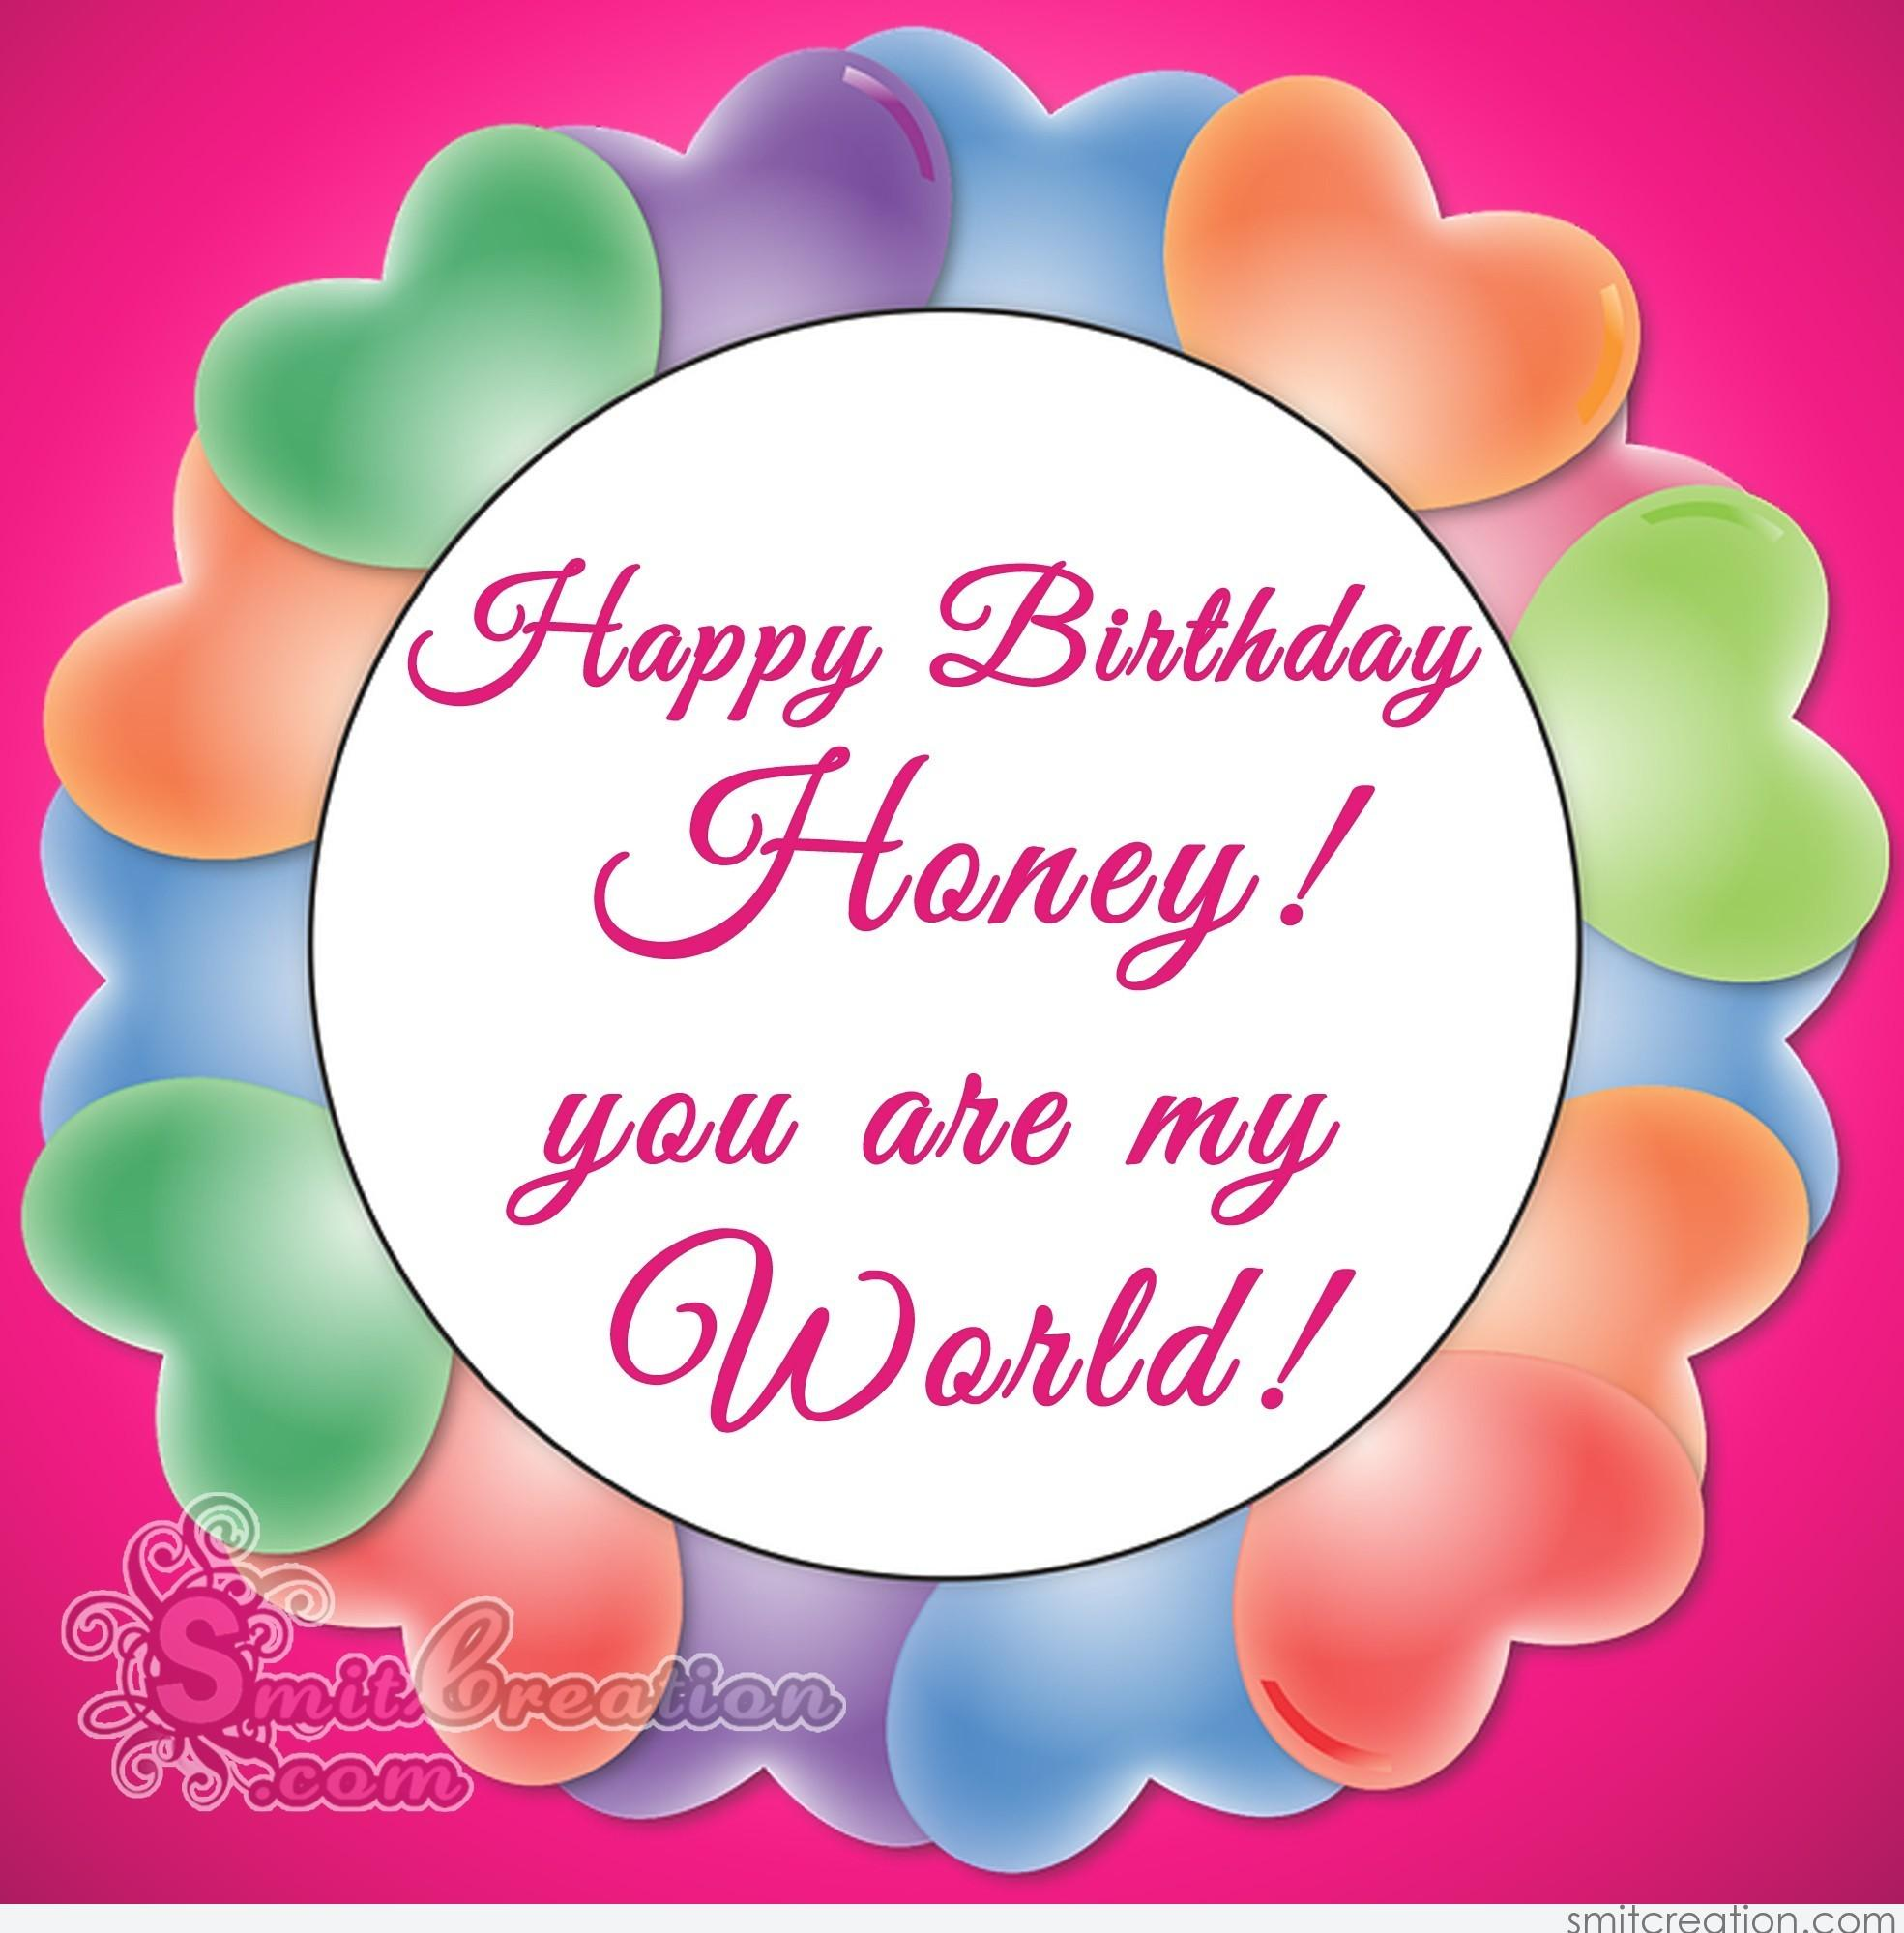 happy birthday honey images ; 5223